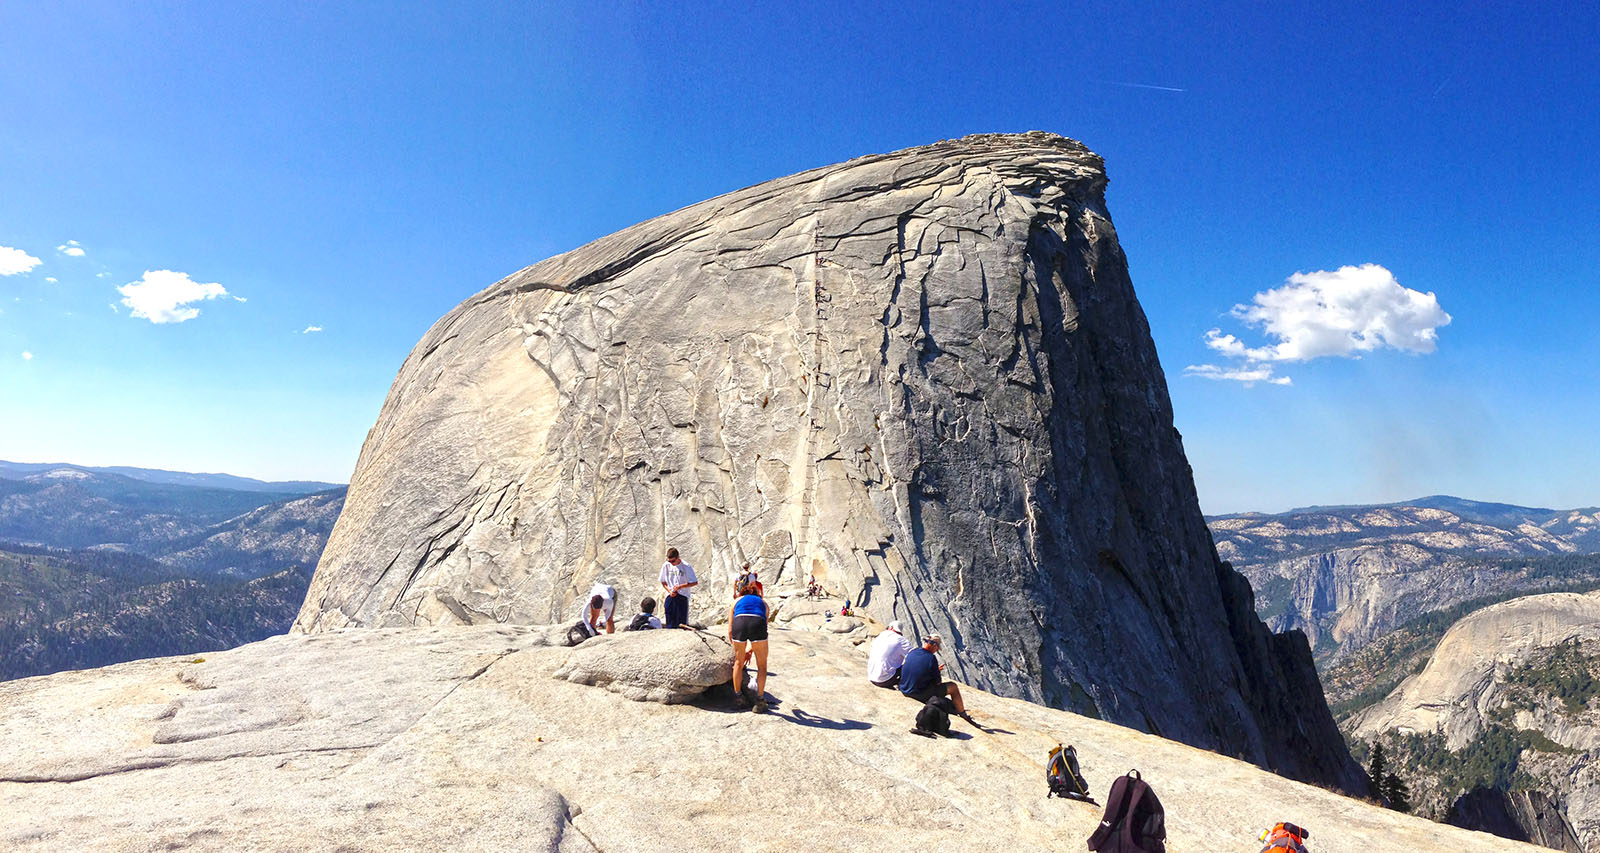 Hiking Half Dome in Yosemite via the Mist Trail on yosemite valley trail map, yosemite california road map, el capitan trail map, yosemite panorama trail map, mist trail yosemite map, hotels near yosemite national park map, little yosemite valley map, camp 4 yosemite map, yosemite four mile trail map, john muir trail map, yosemite valley floor map, yosemite hiking map, yosemite ten lakes trail map, yosemite elevation map, yosemite backpacking trail maps, yosemite west map, yosemite falls map, yosemite tuolumne meadows trail map, yosemite topo map, yosemite park trail map,